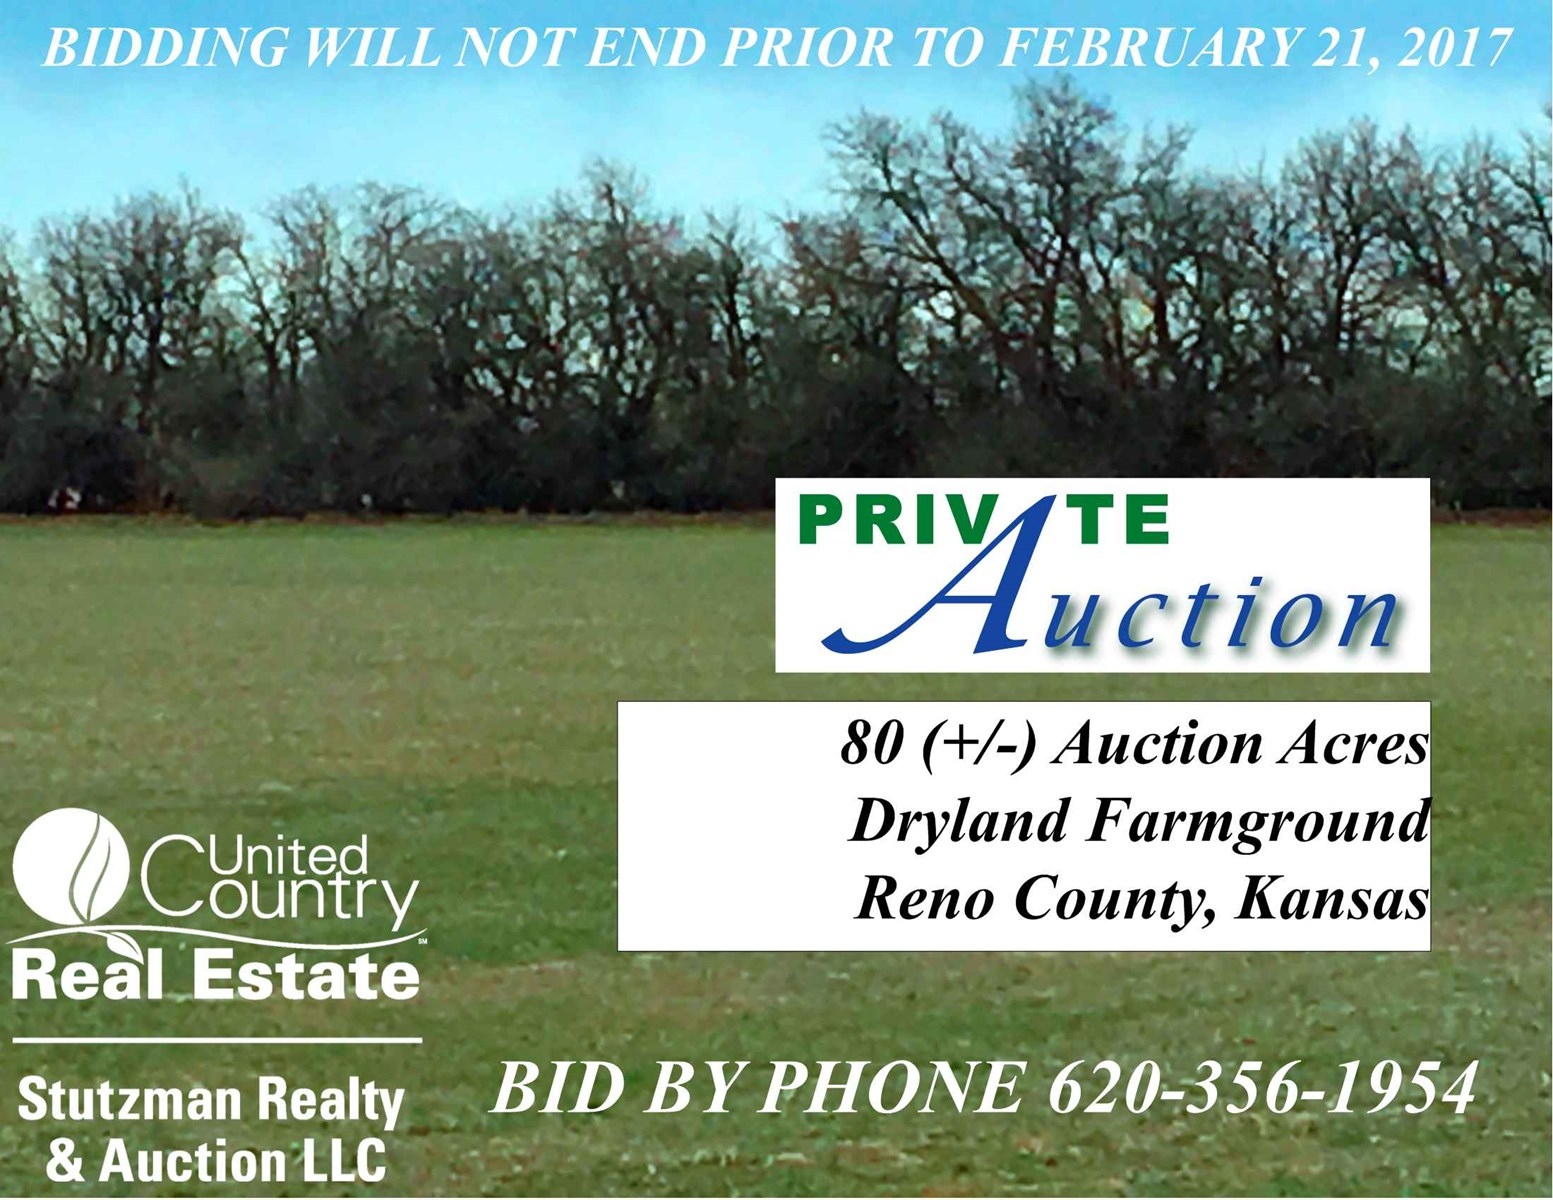 PRIVATE AUCTION 80 ACRES DRYLAND FARM in RENO COUNTY  KS